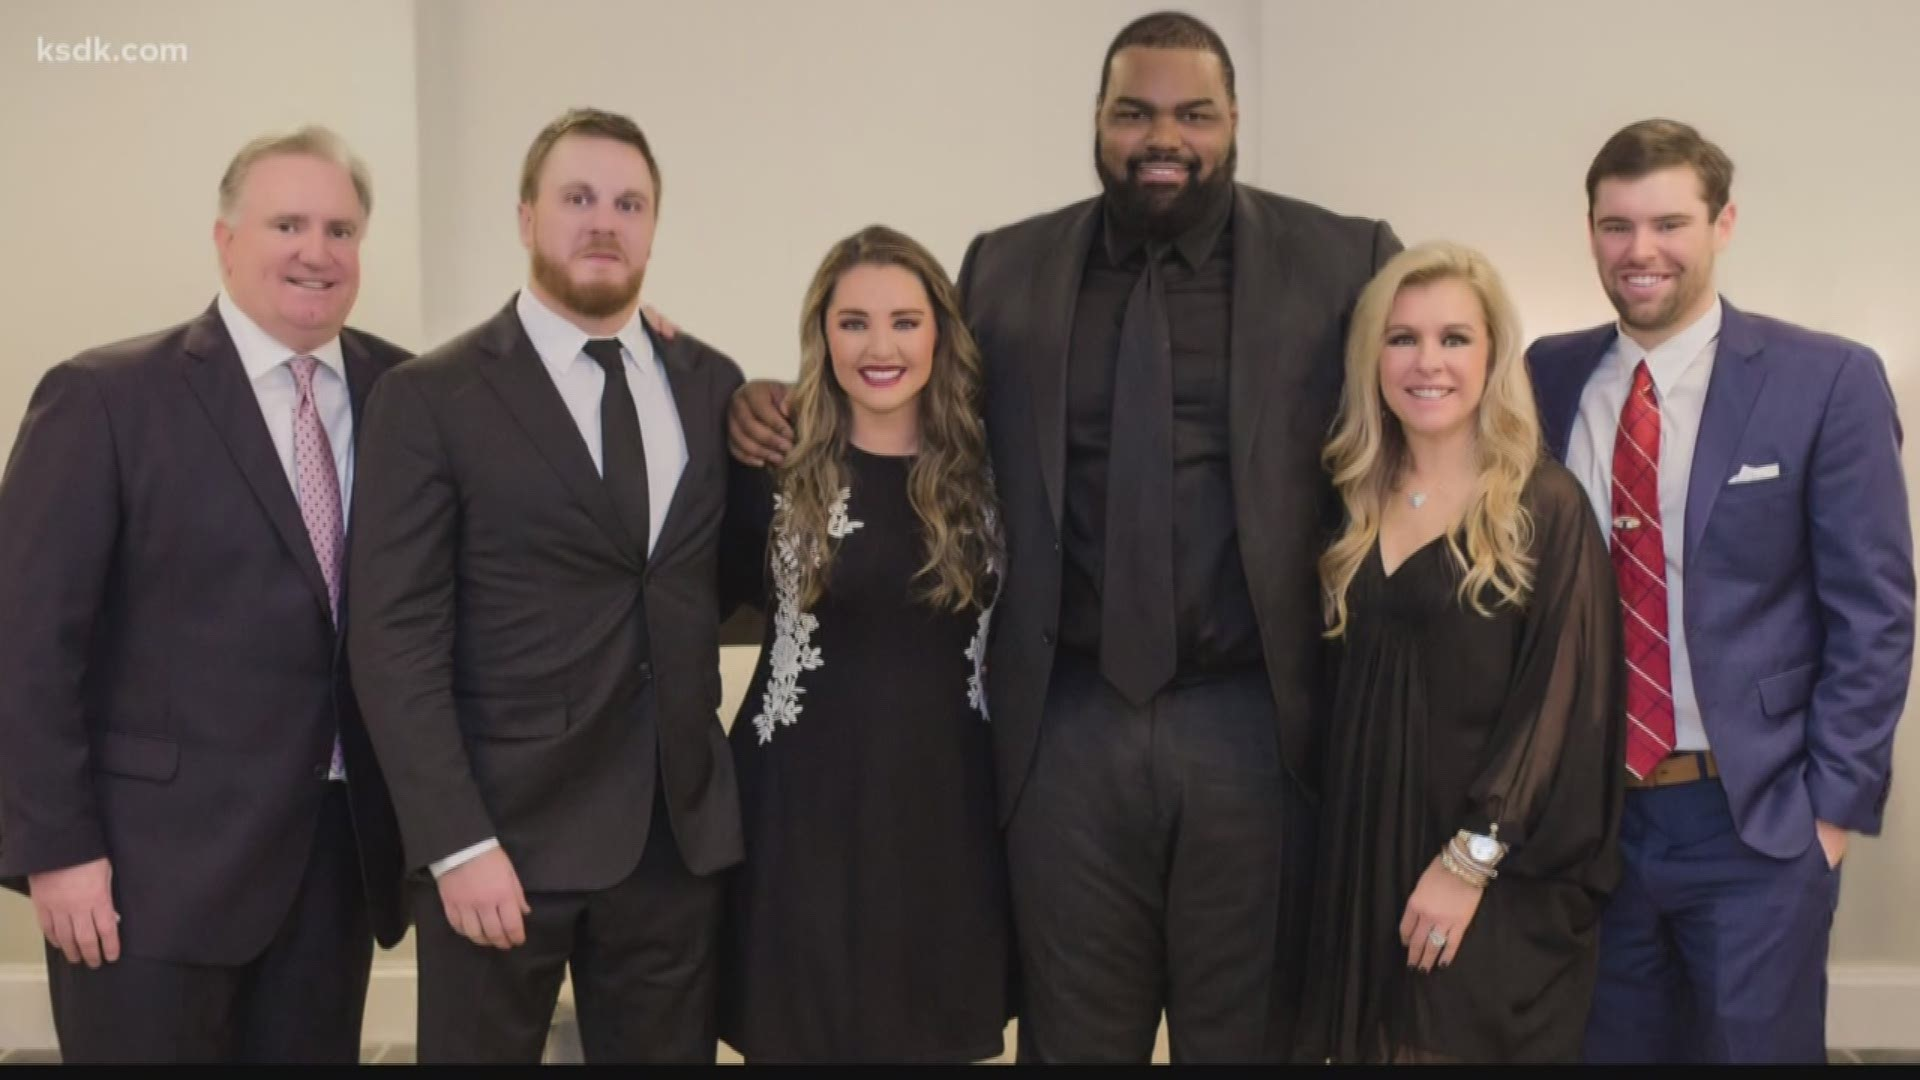 Mom Of The Blind Side Family Sees Parallels In This Is Us Ksdk Com